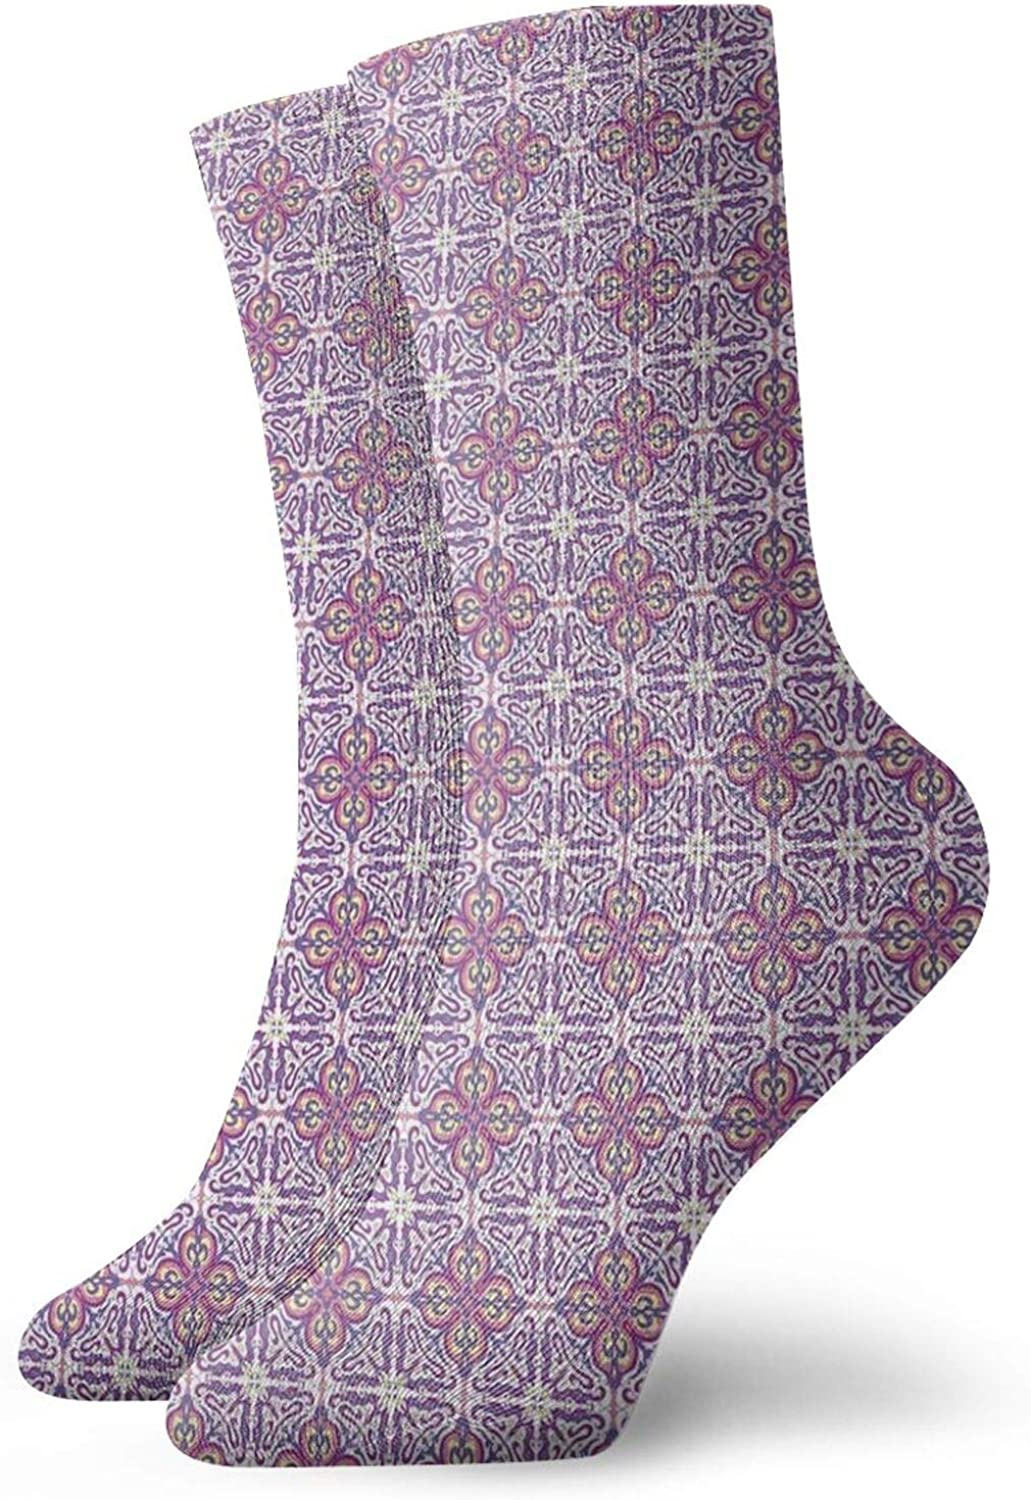 Compression High Socks-Abstract Oriental Floral Motifs Antique Hand Tile Design Repeating Pattern Best for Running,Athletic,Hiking,Travel,Flight